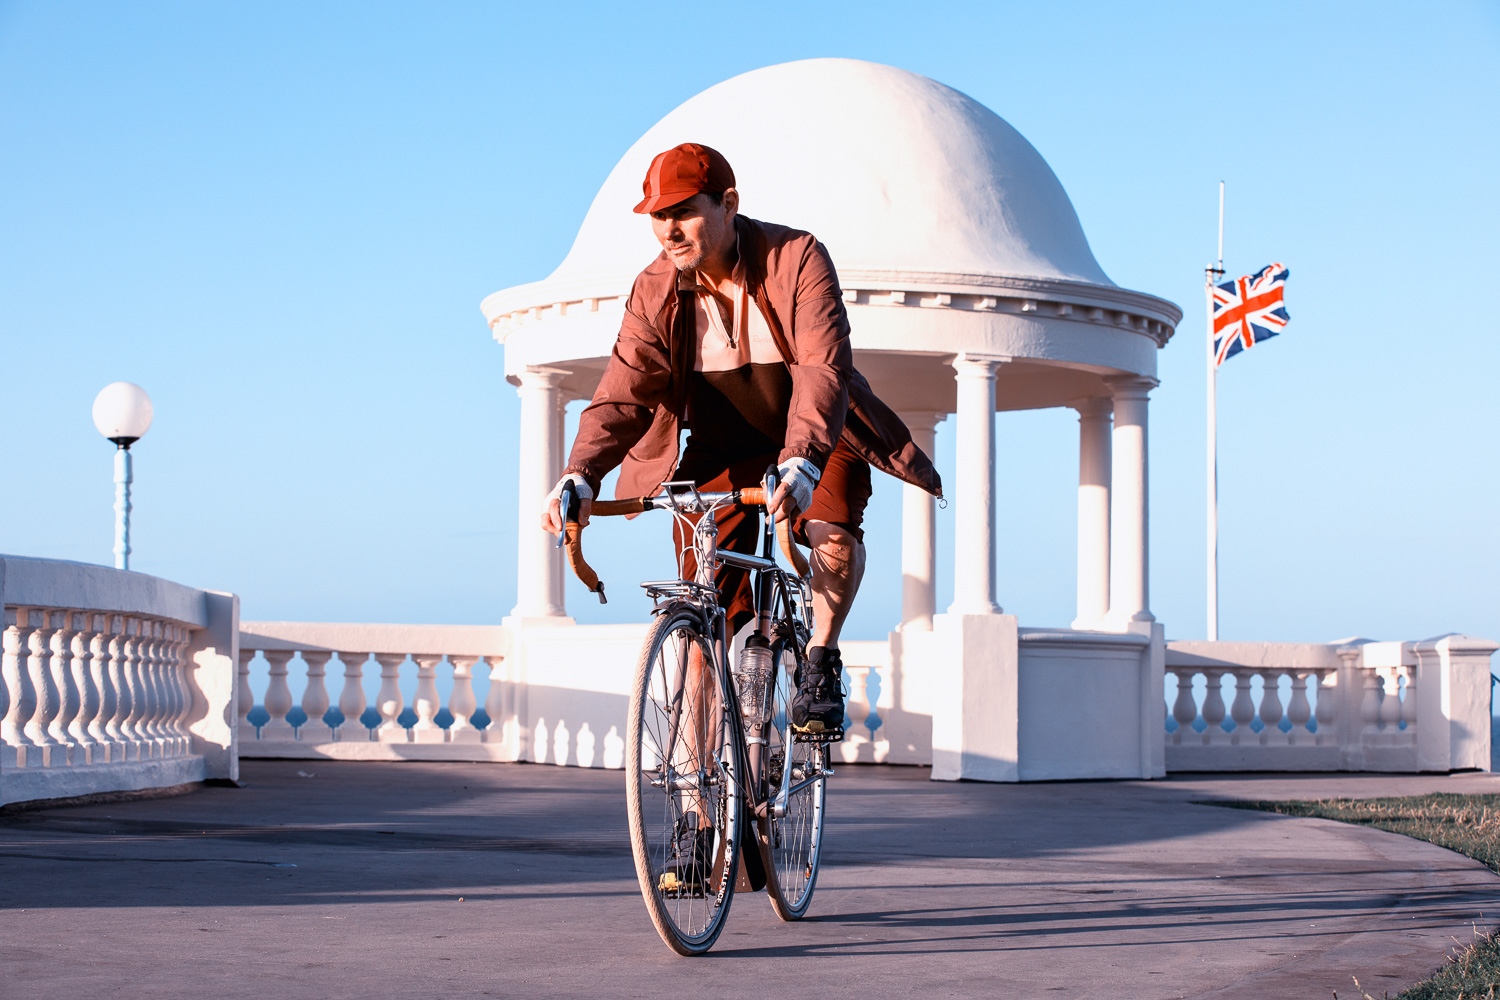 Recreating the sense of one of those upbeat 1950s advertisement for made-in-Britain bicycles; image tae at the King George V Colonnade on the seafront at Bexhill-on-Sea